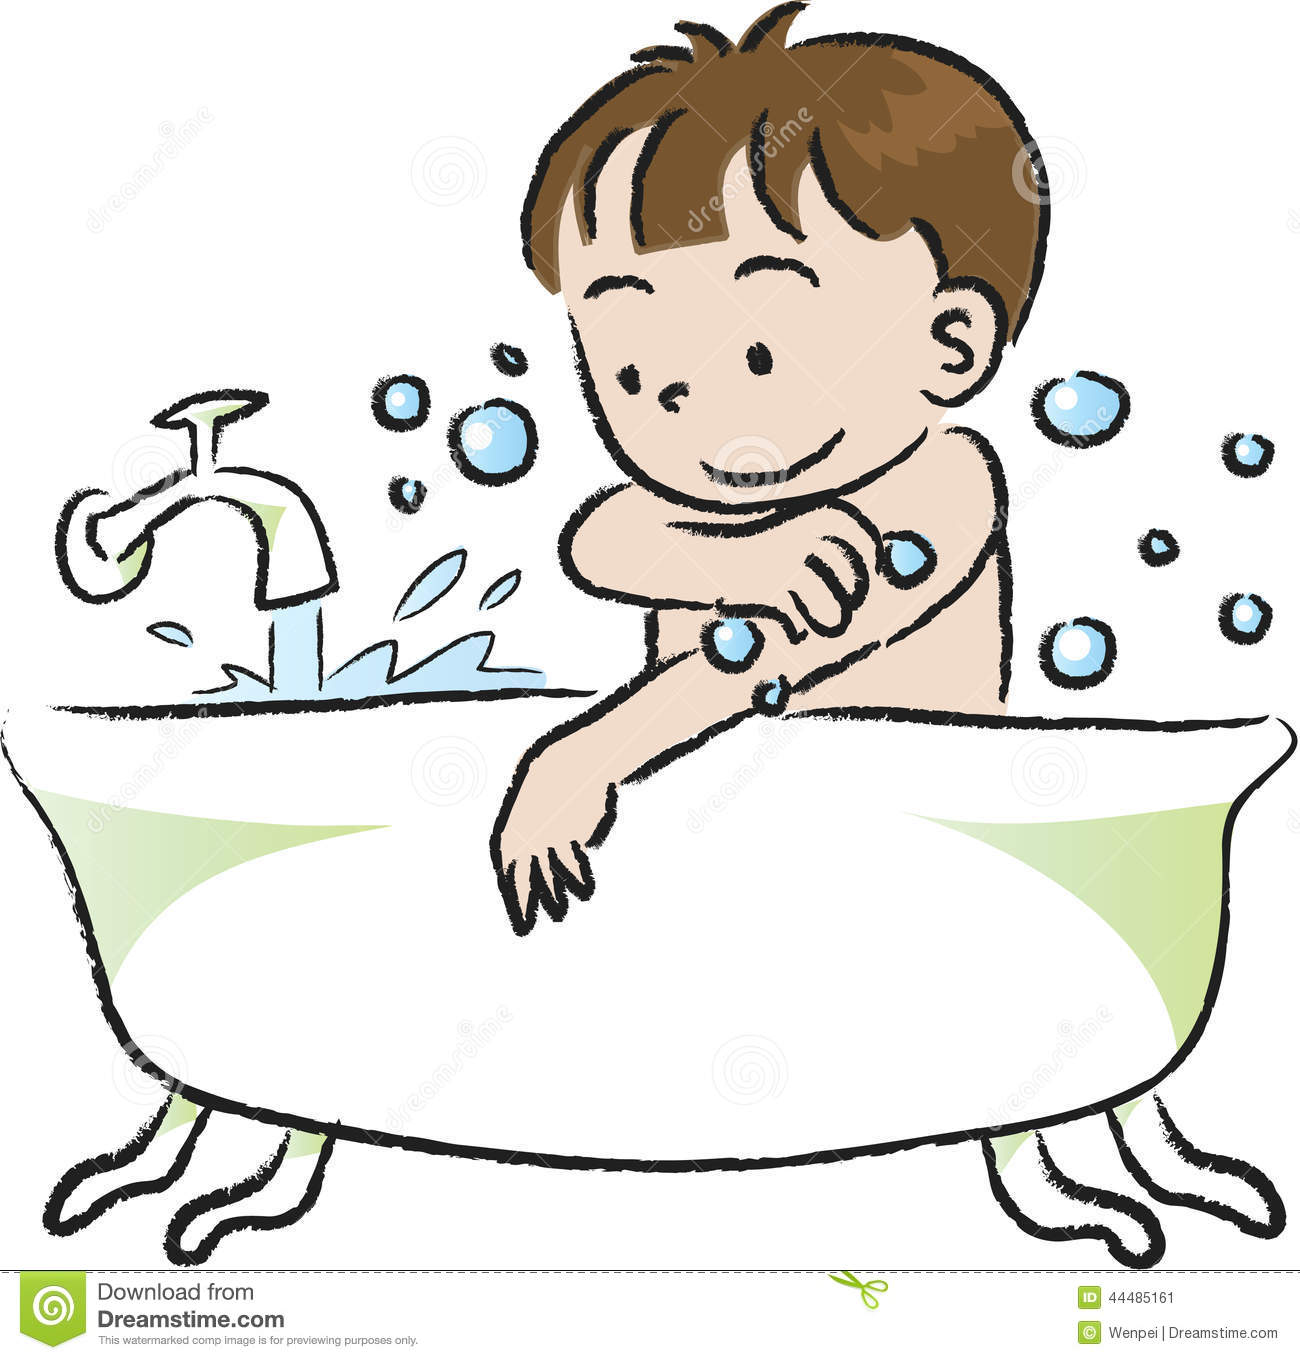 Baden clipart image black and white Baden clipart 12 » Clipart Station image black and white